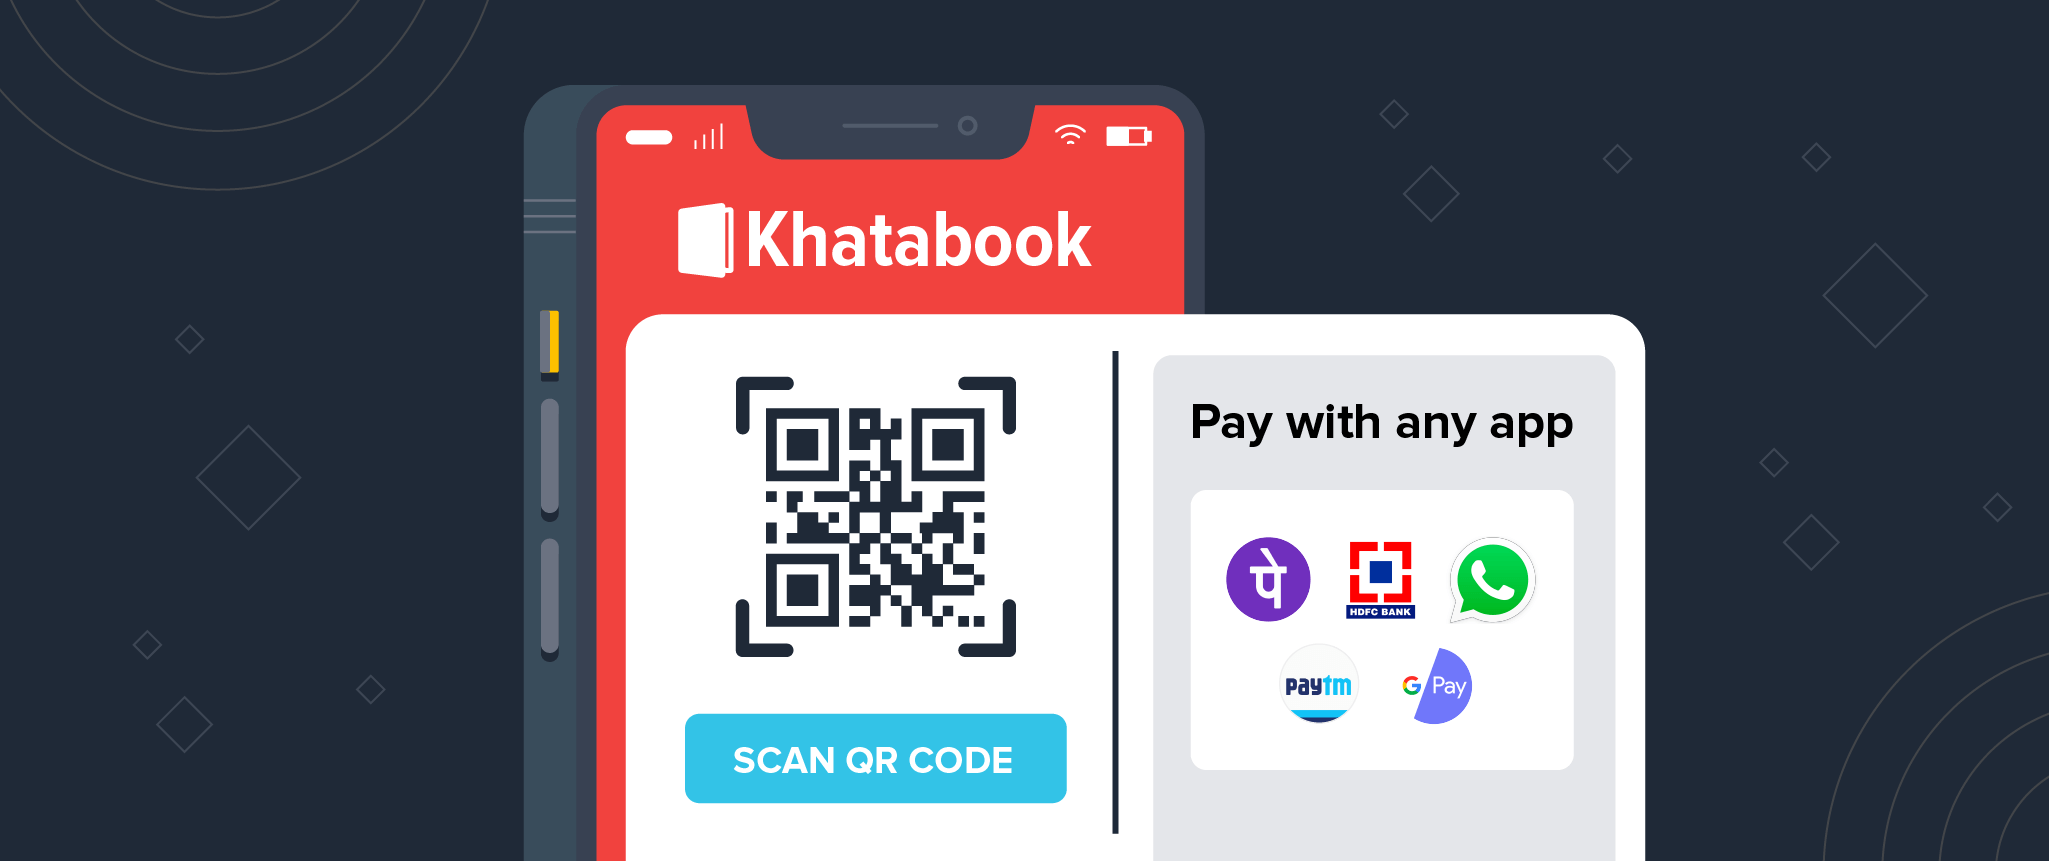 How B2B Ledger App Khatabook Combines Customer Education & Gamification to Fuel Growth